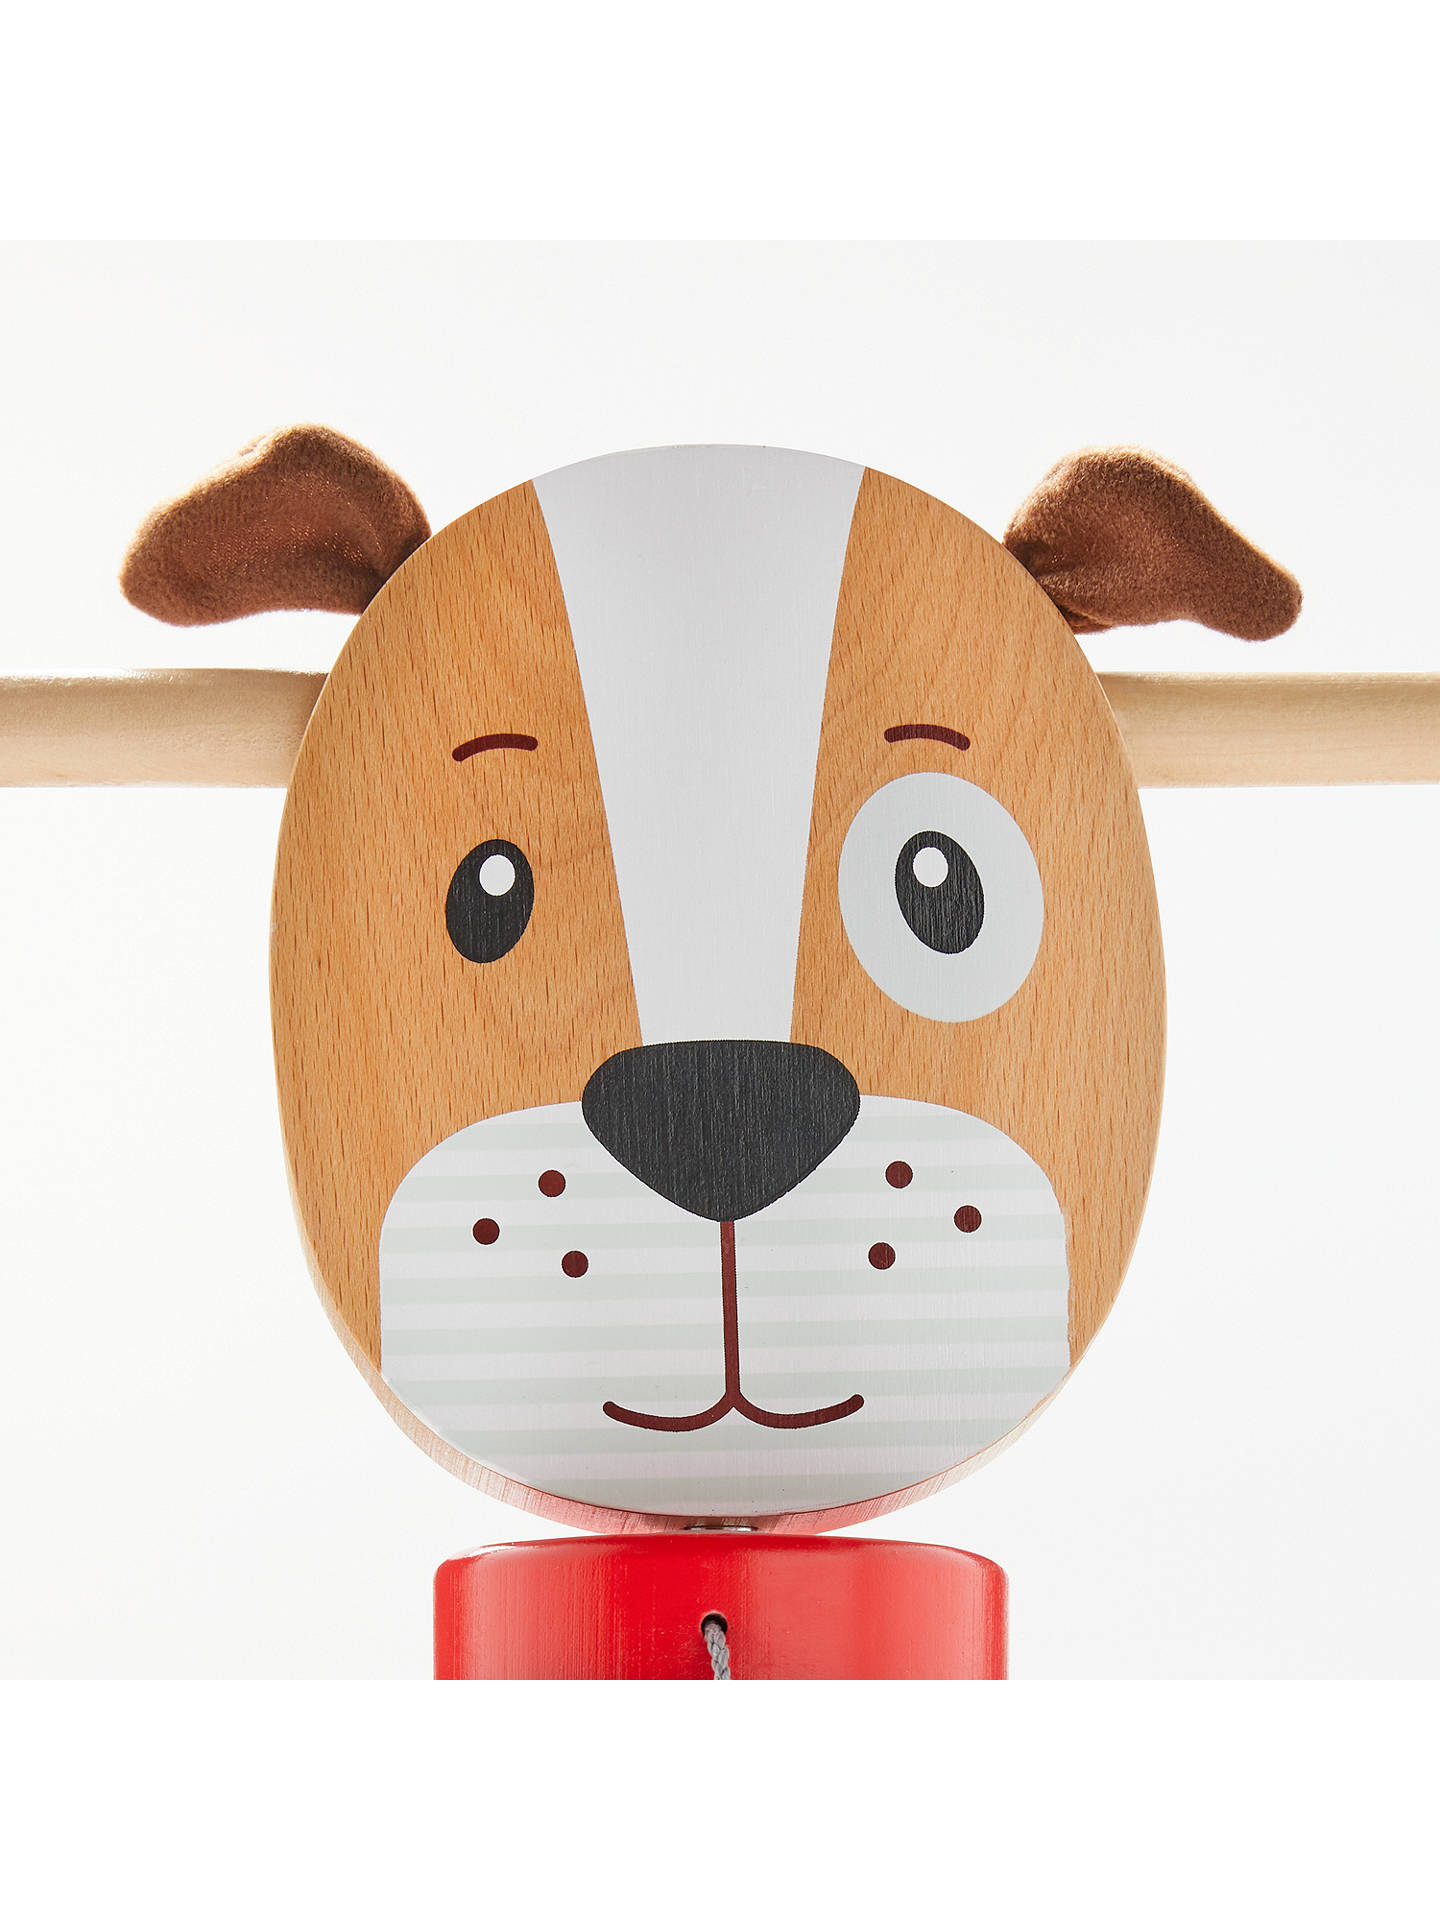 BuyJohn Lewis & Partners Wooden Ride-On Dog Online at johnlewis.com